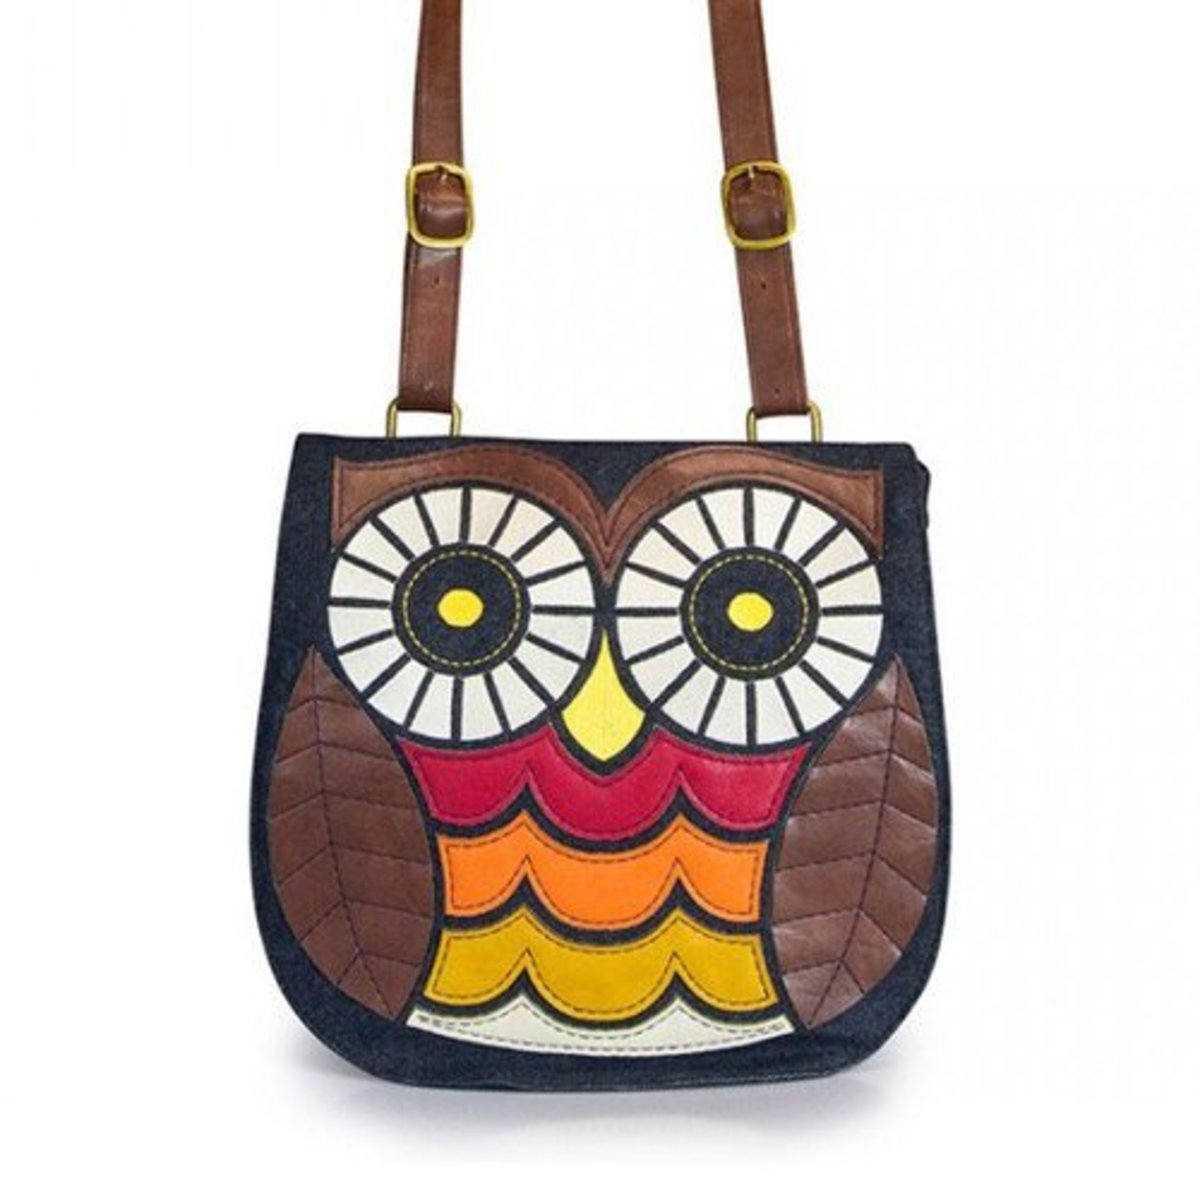 Available at INKEDSHOP.COM: Denim Owl Crossbody Bag by Loungefly